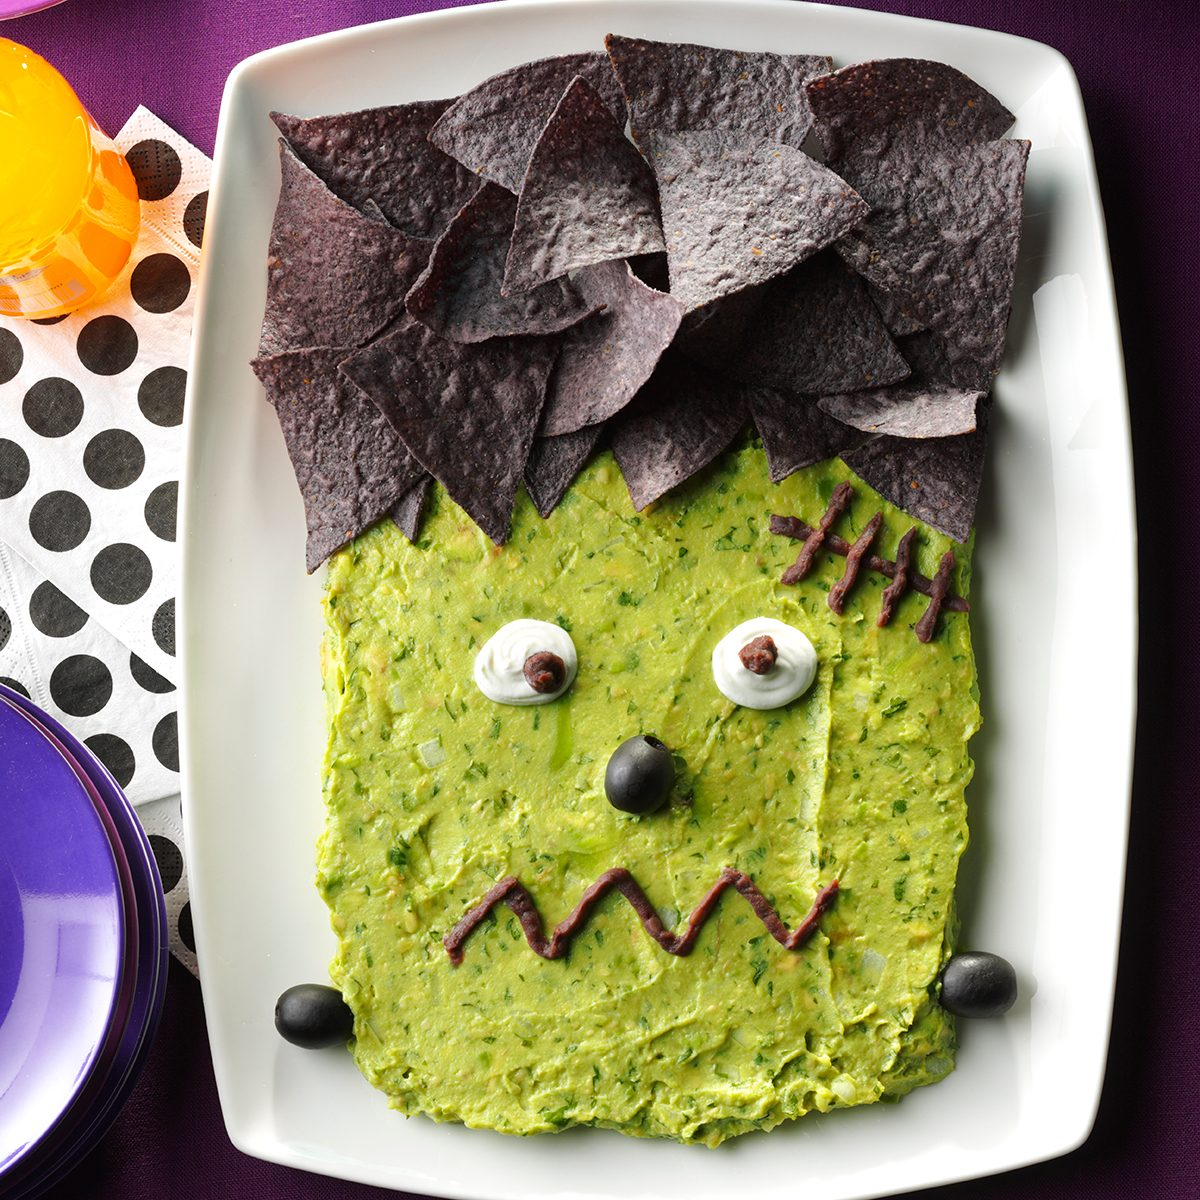 15 Easy Diy Halloween Ideas For Snacks And Decorations Taste Of Home